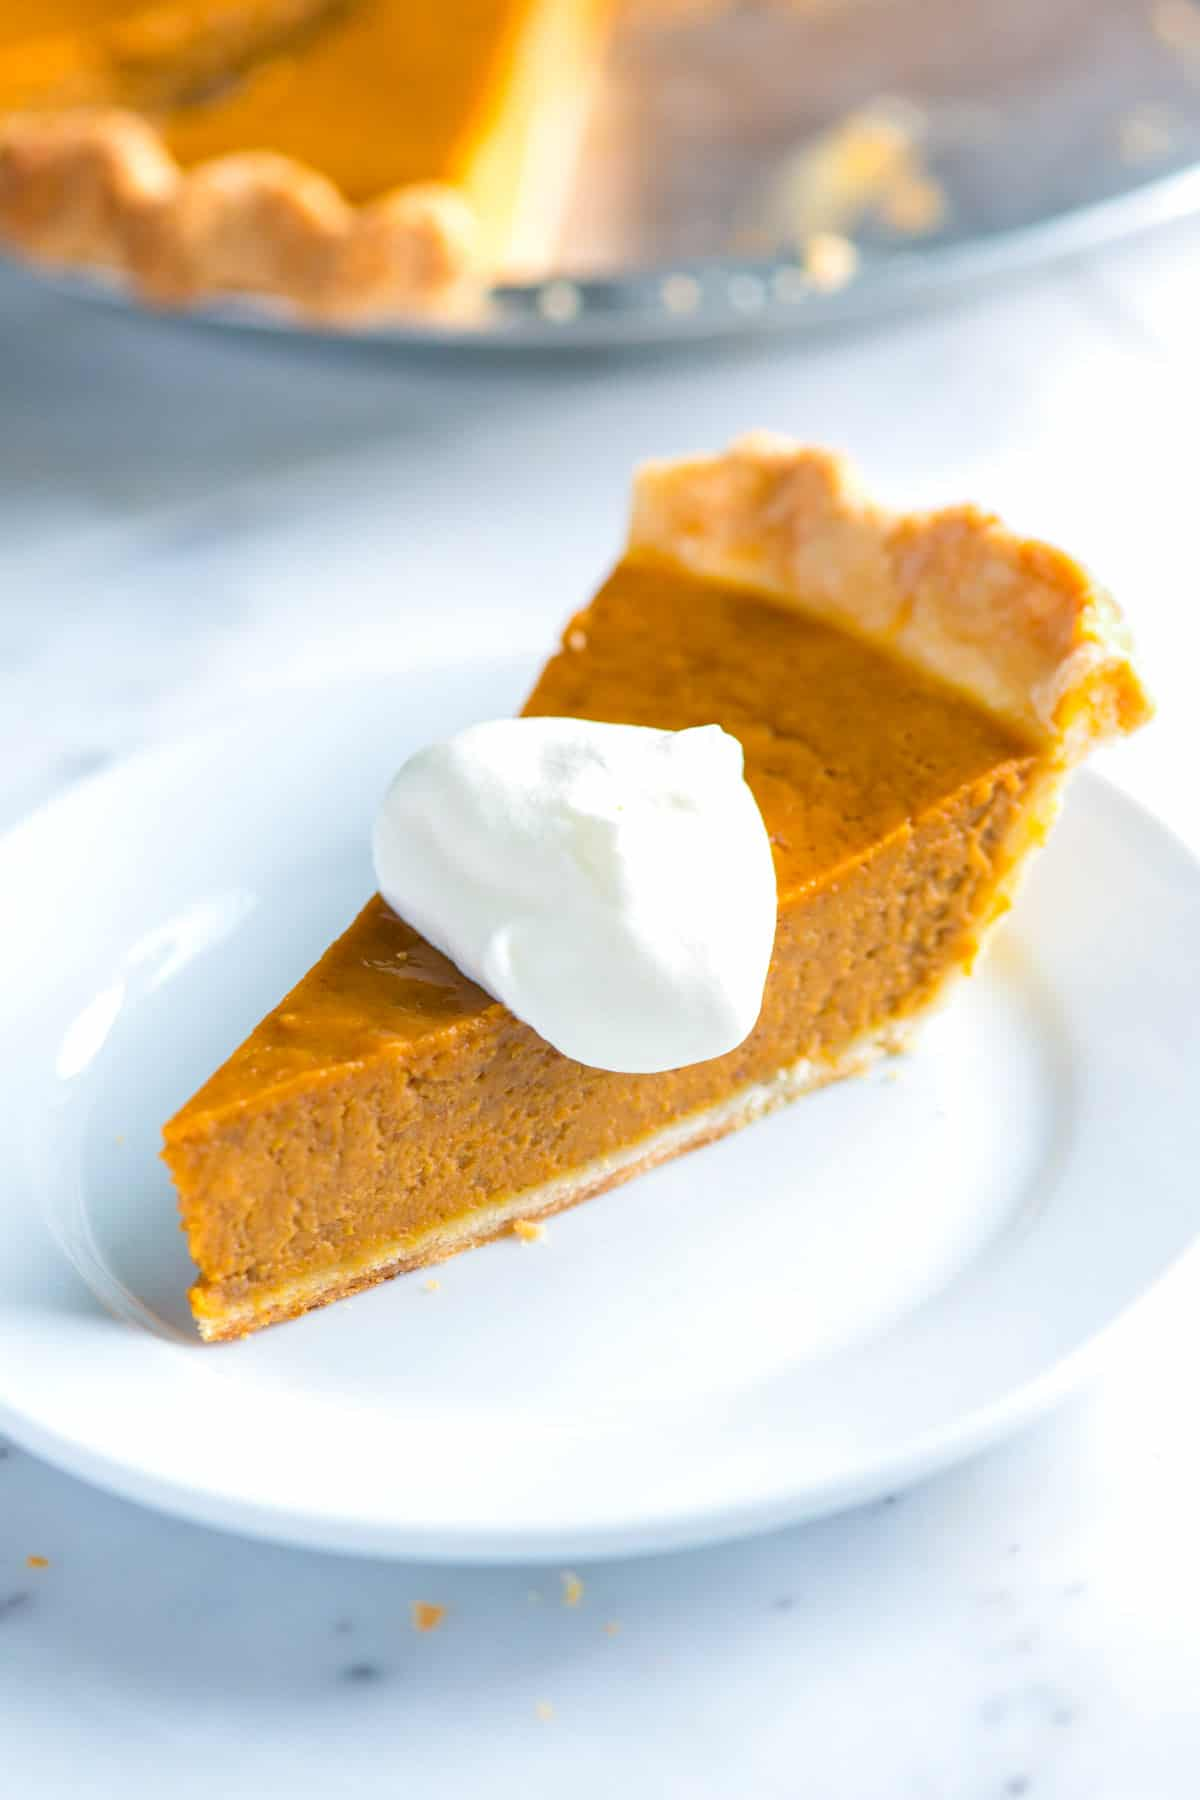 Easy, homemade pumpkin pie recipe with pumpkin puree (canned or homemade), eggs, cream, sugar and spices. Easy from scratch recipe with video!